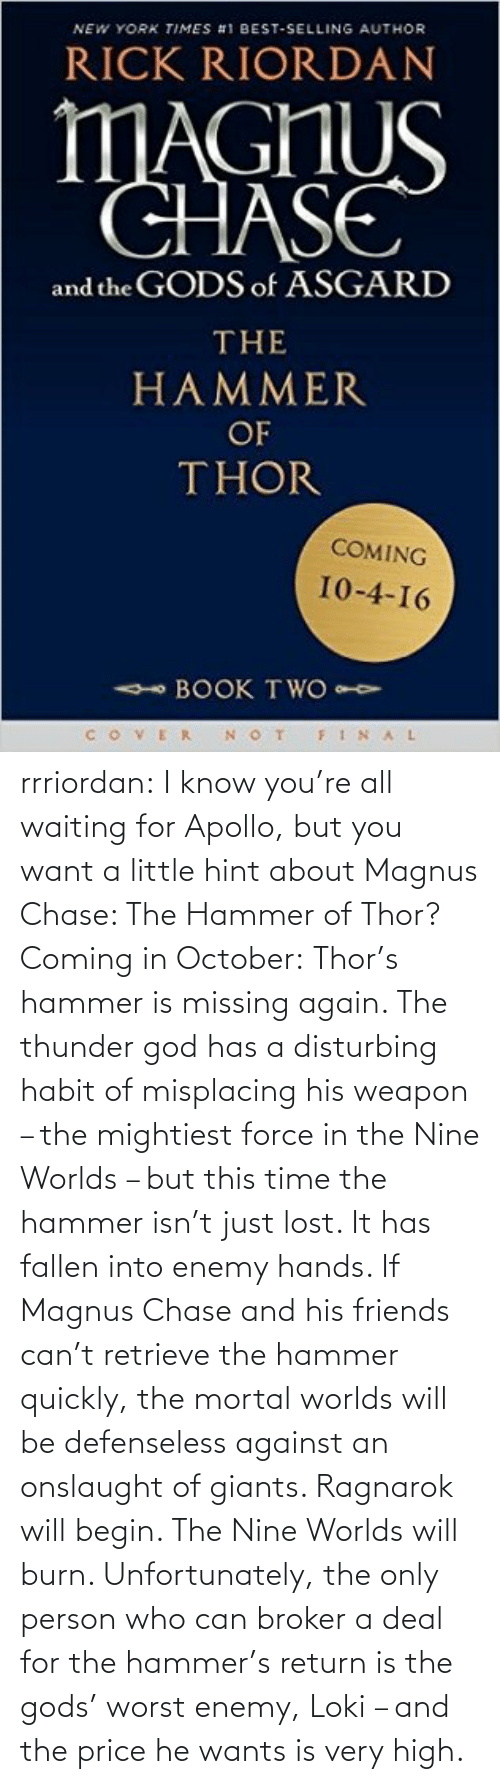 hammer of thor: NEW YORK TIMES #1 BEST-SELLING AUTHOR  RICK RIORDAN  MAGHUS  CHASE  and the GODS of ASGARD  THE  HAMMER  OF  THOR  COMING  10-4-16  - BOOK TWO  VER N OT  FINAL rrriordan:  I know you're all waiting for Apollo, but you want a little hint about Magnus Chase: The Hammer of Thor? Coming in October:Thor's hammer is missing again. The thunder god has a disturbing habit of misplacing his weapon – the mightiest force in the Nine Worlds – but this time the hammer isn't just lost. It has fallen into enemy hands. If Magnus Chase and his friends can't retrieve the hammer quickly, the mortal worlds will be defenseless against an onslaught of giants. Ragnarok will begin. The Nine Worlds will burn. Unfortunately, the only person who can broker a deal for the hammer's return is the gods' worst enemy, Loki – and the price he wants is very high.